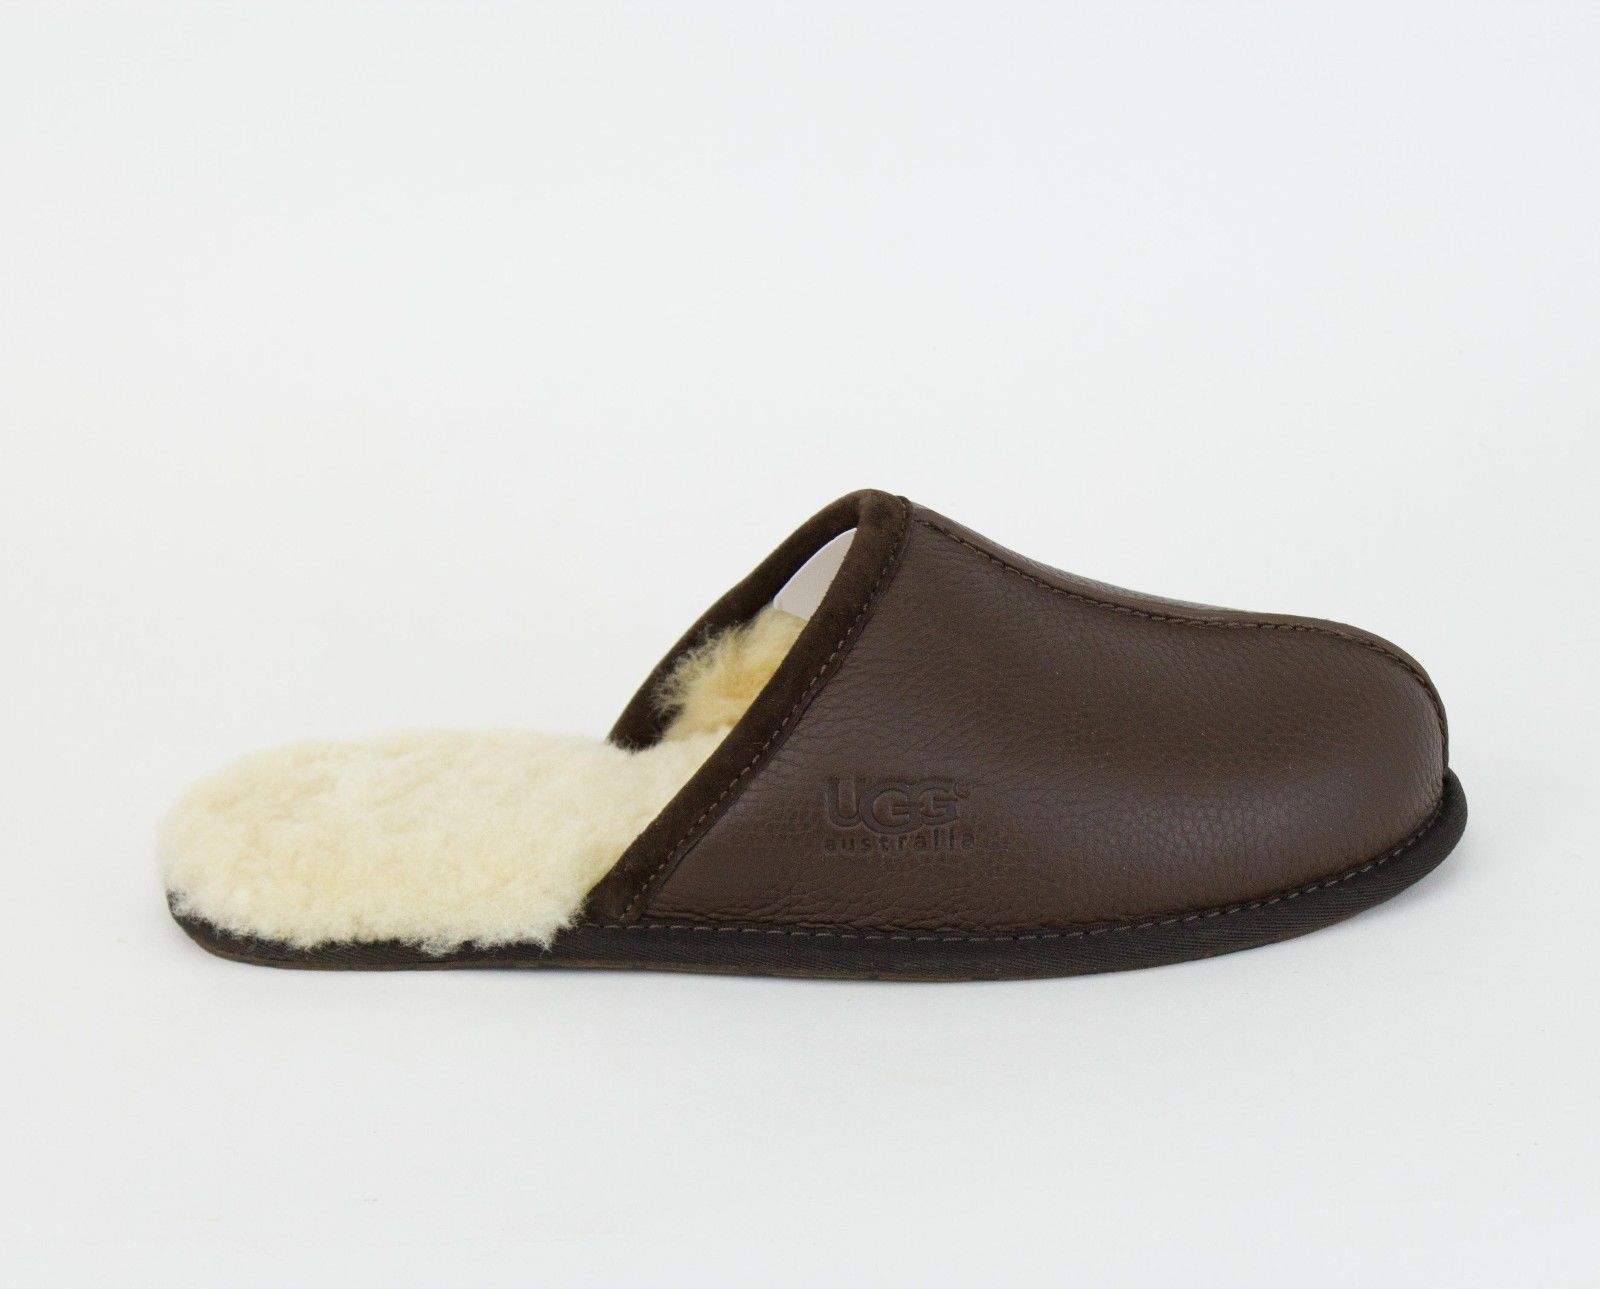 47d61eb1626 Mens Ugg Australia Scuff House Slippers - cheap watches mgc-gas.com